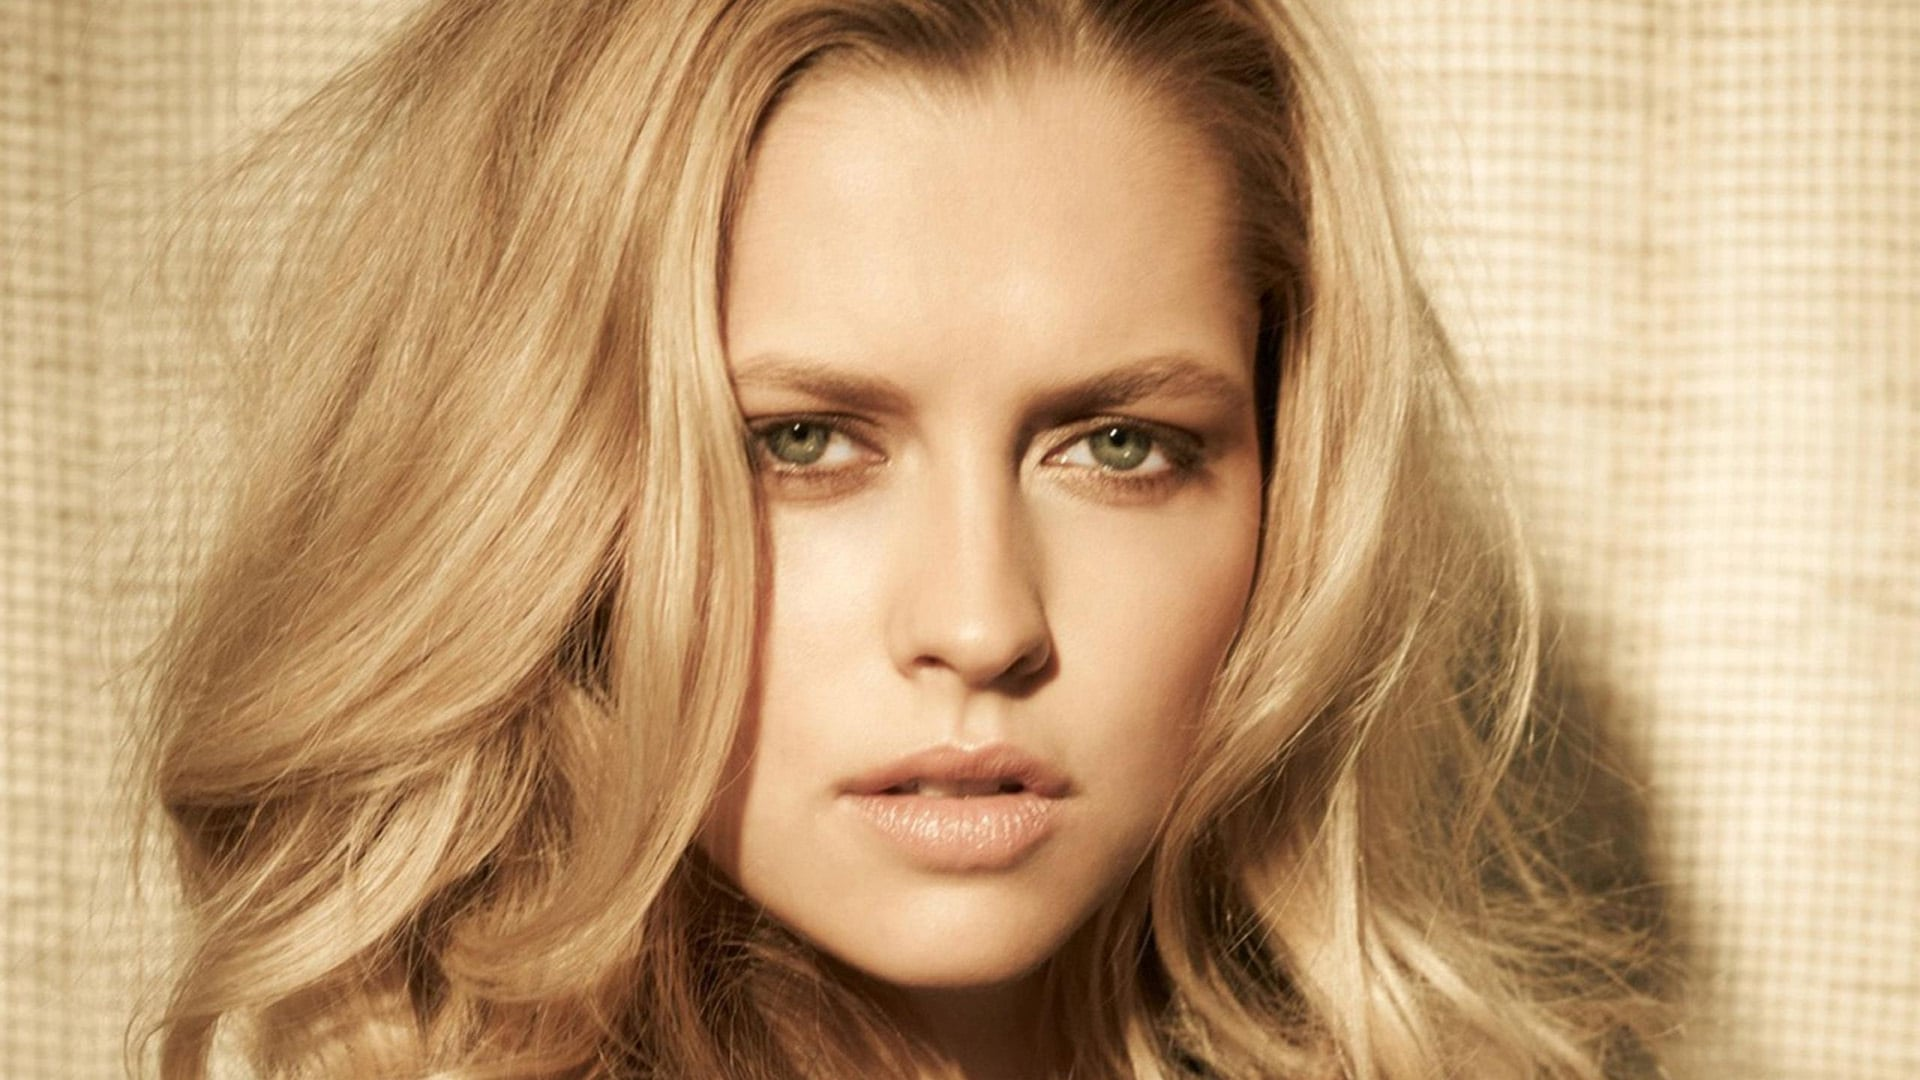 Teresa palmer hd wallpapers free download Hd home me